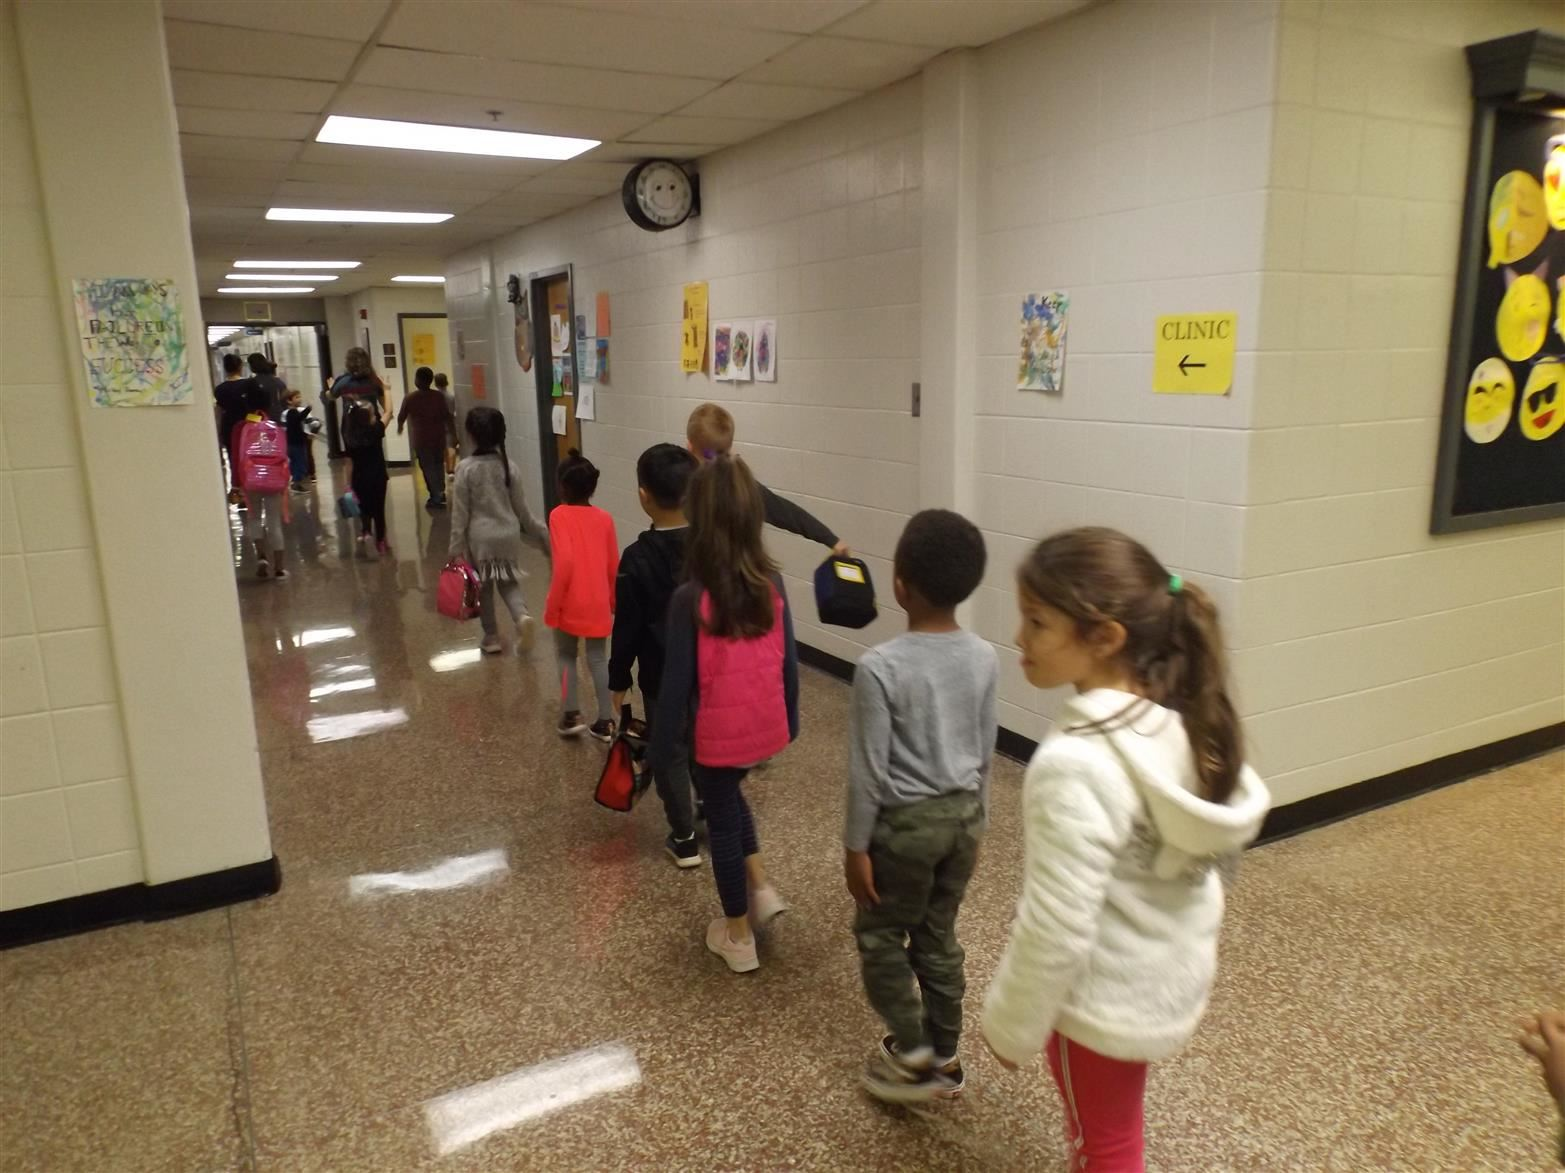 Students walking down hall in a line